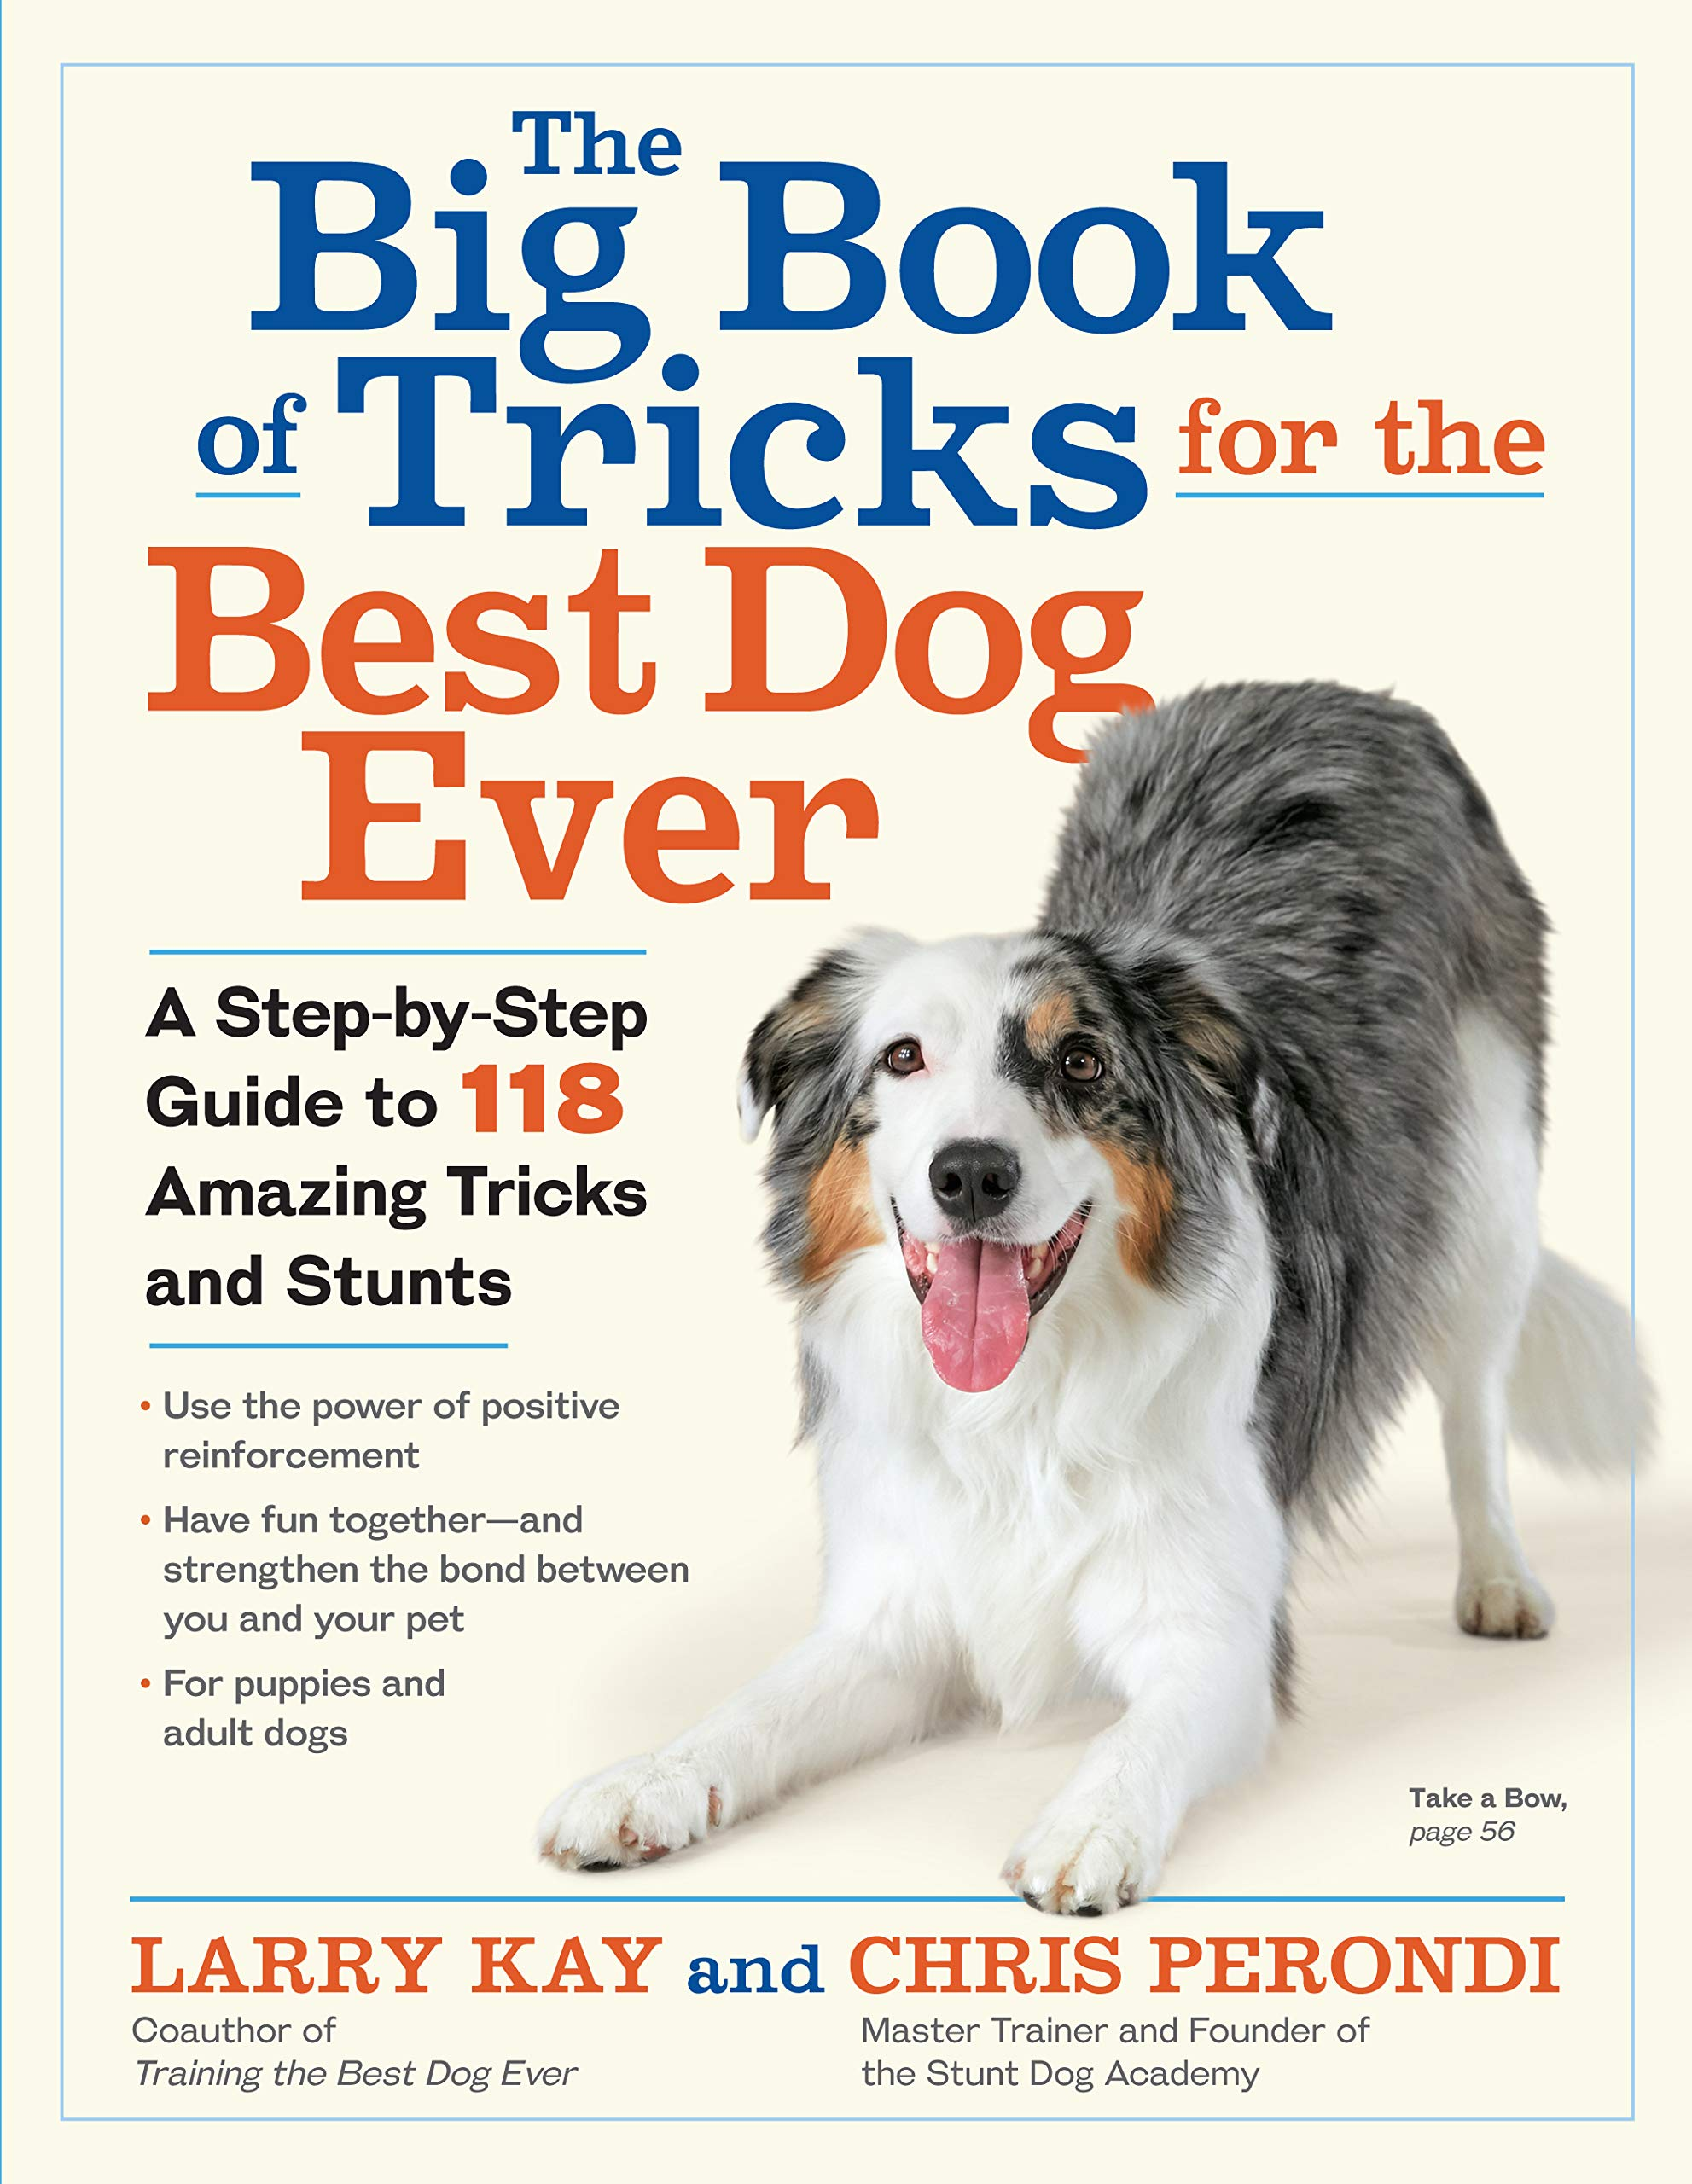 The Big Book of Tricks for the Best Dog Ever: A Step-by-Step Guide to 118 Amazing Tricks and Stunts by Workman Publishing Company